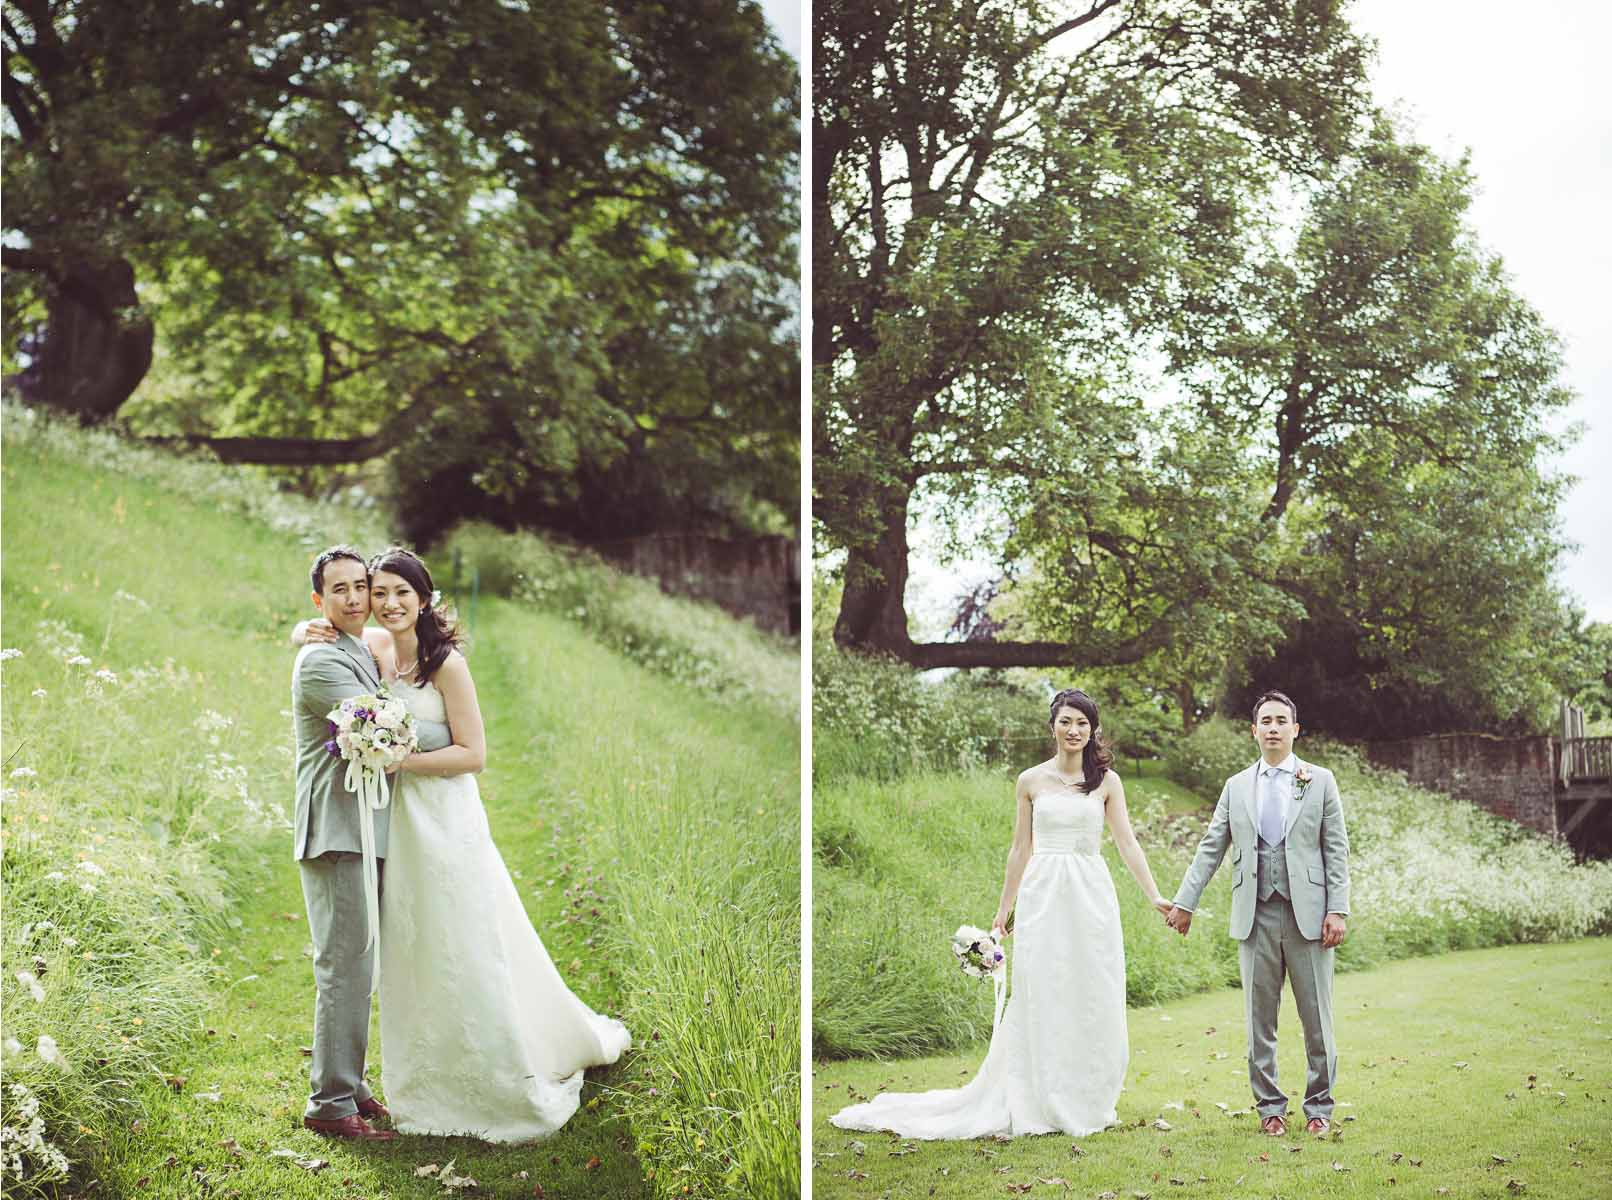 Wedding at Eltham Palace photographed by My Beautiful Bride